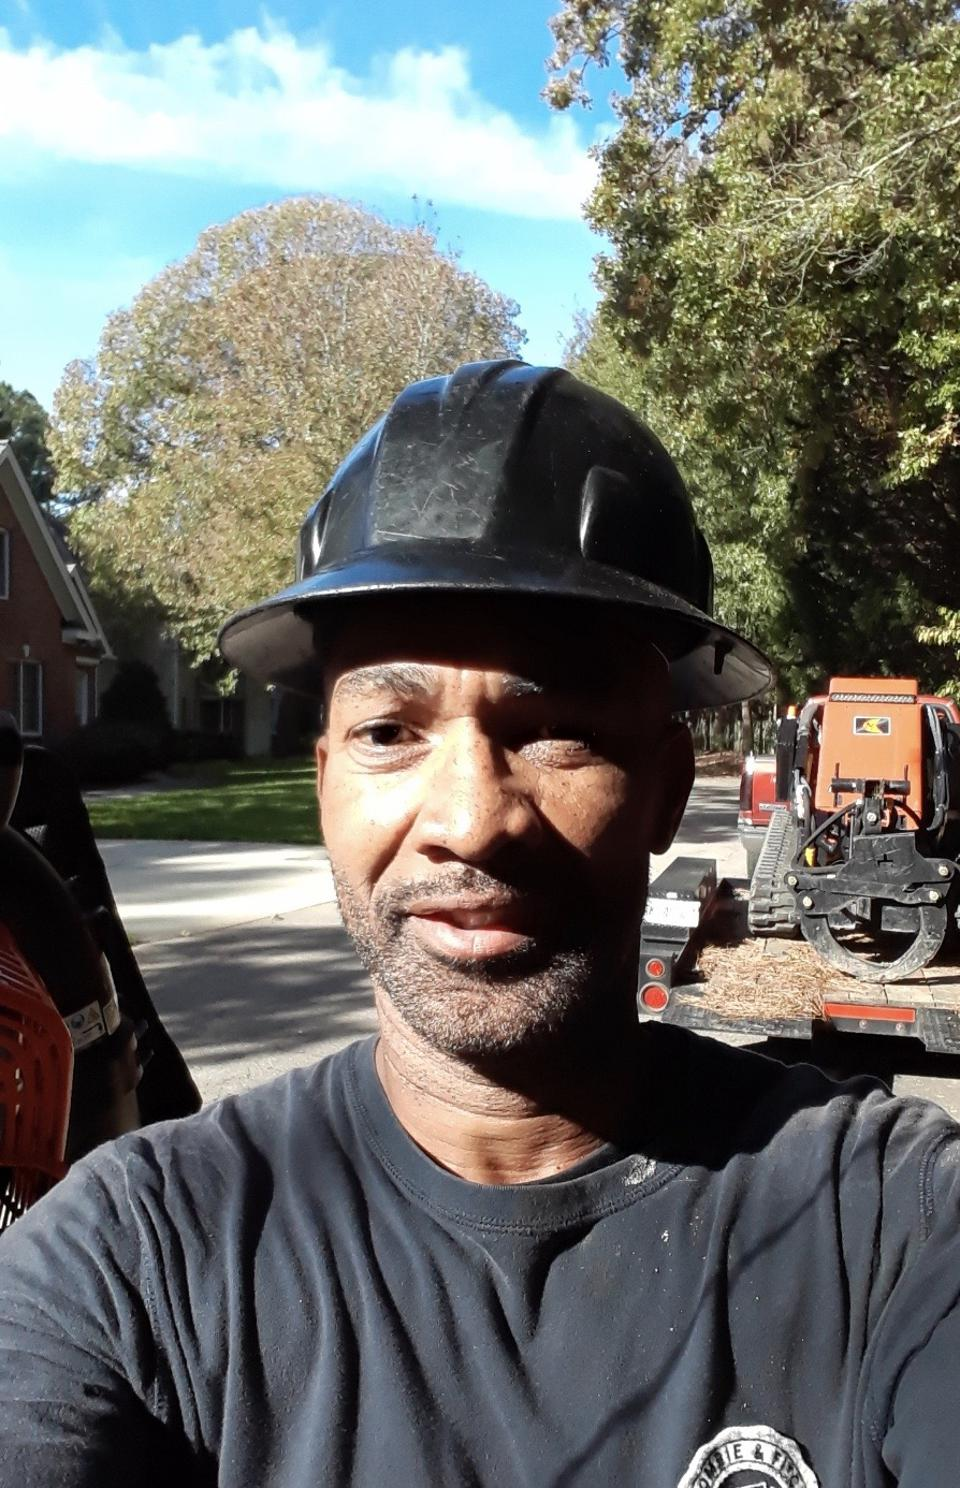 From a life in prison, Alton Lukas now runs Suflower Landscape in Raleigh NC